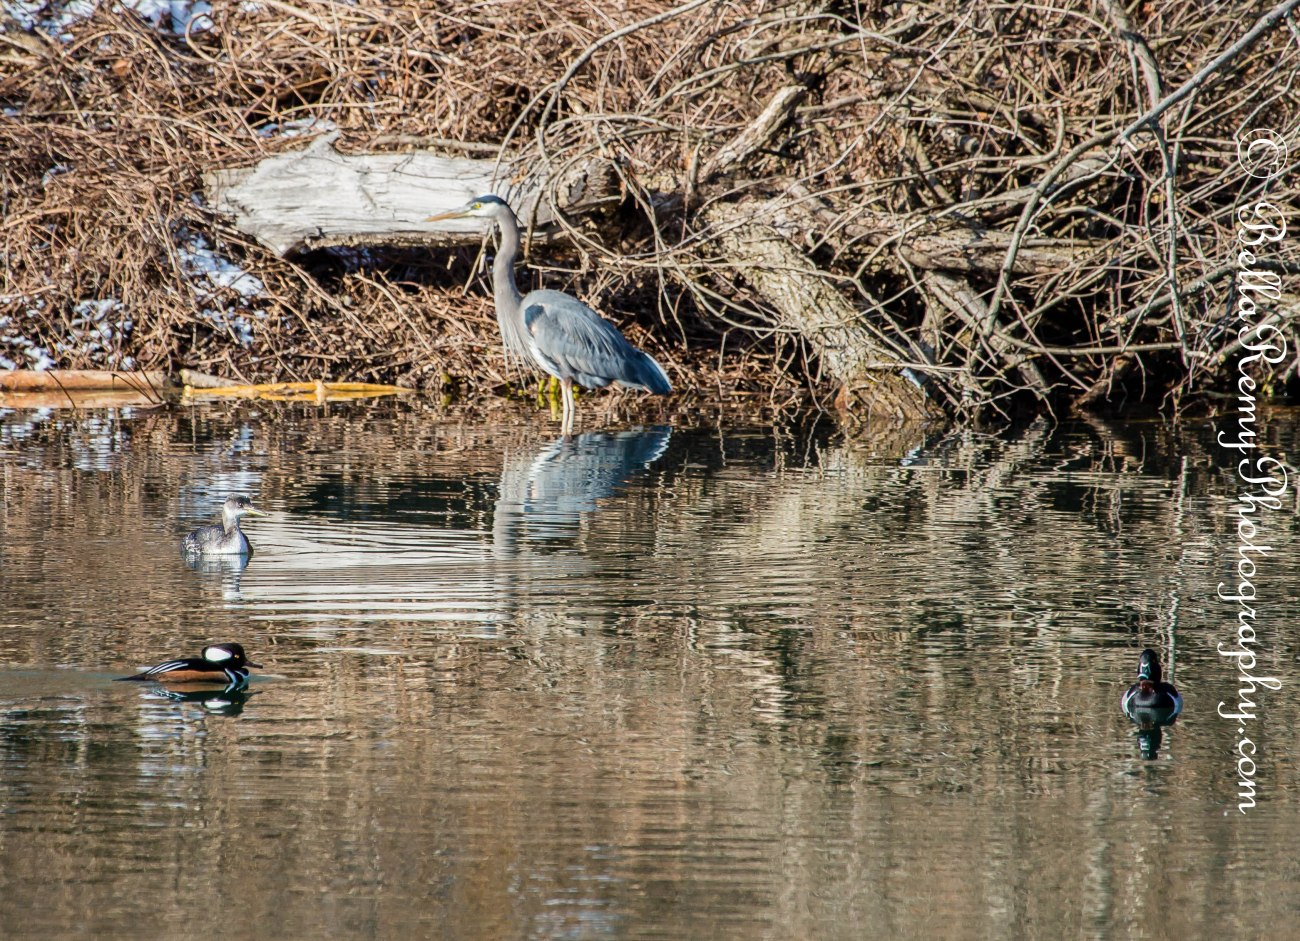 Hooded Merganser, Red Necked Grebe, Great Blue Heron and Ring Necked Duck (from left to right)